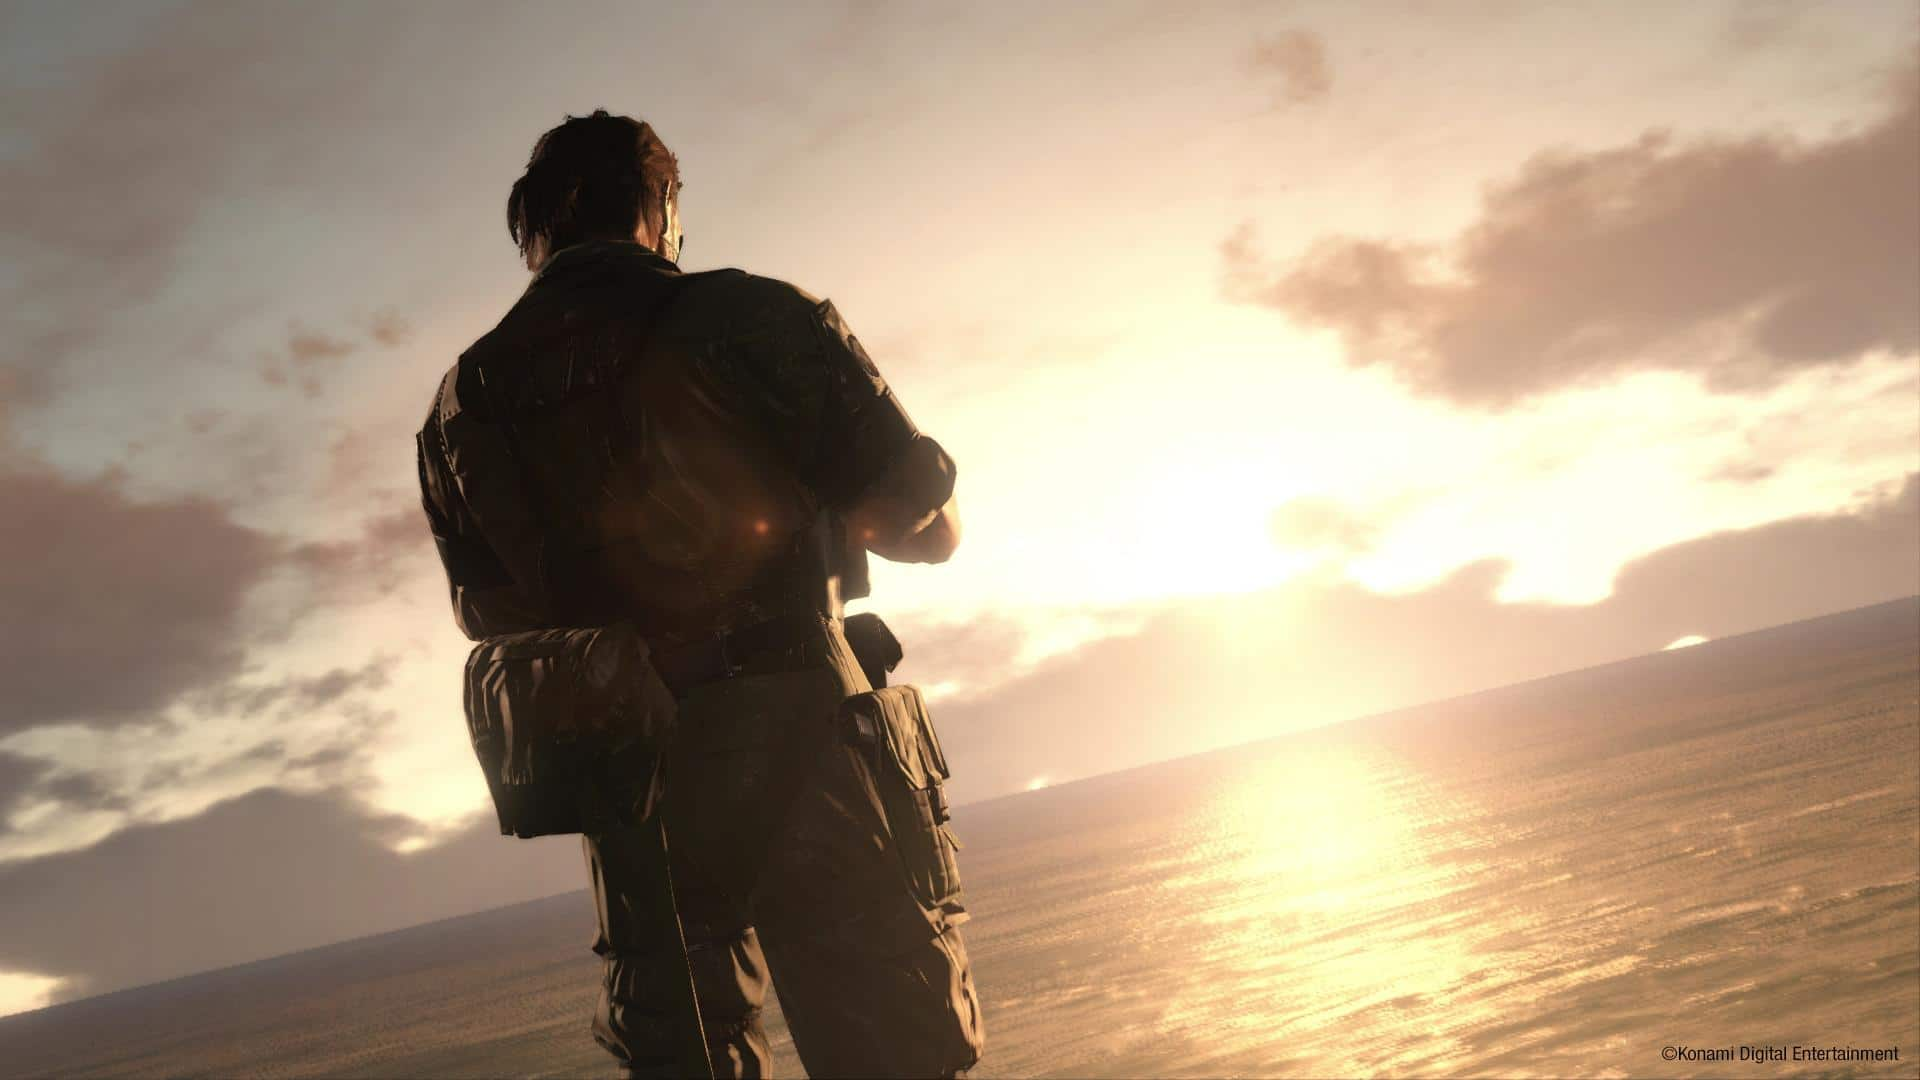 Metal-Gear-Solid-V-The-Phantom-Pain-Screenshot-04